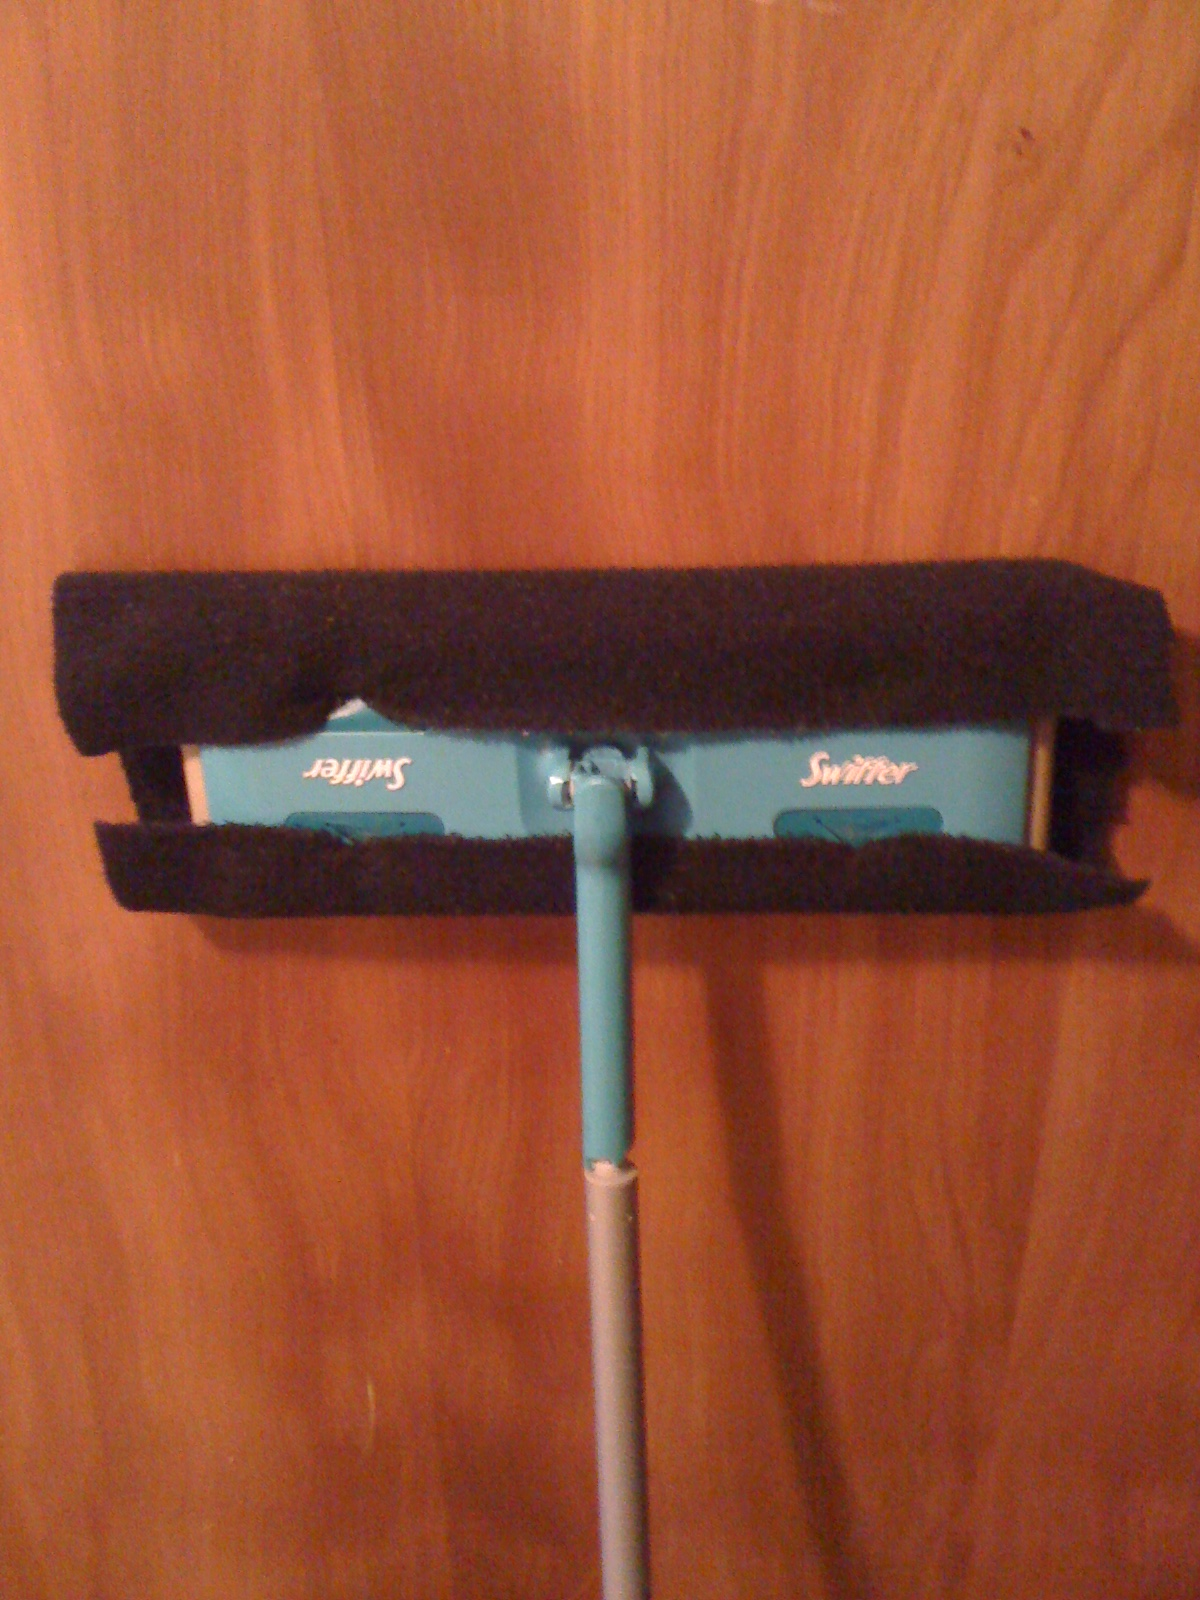 Swiffer \Swiffer\ Sweeper Dry Mop Starter Kit